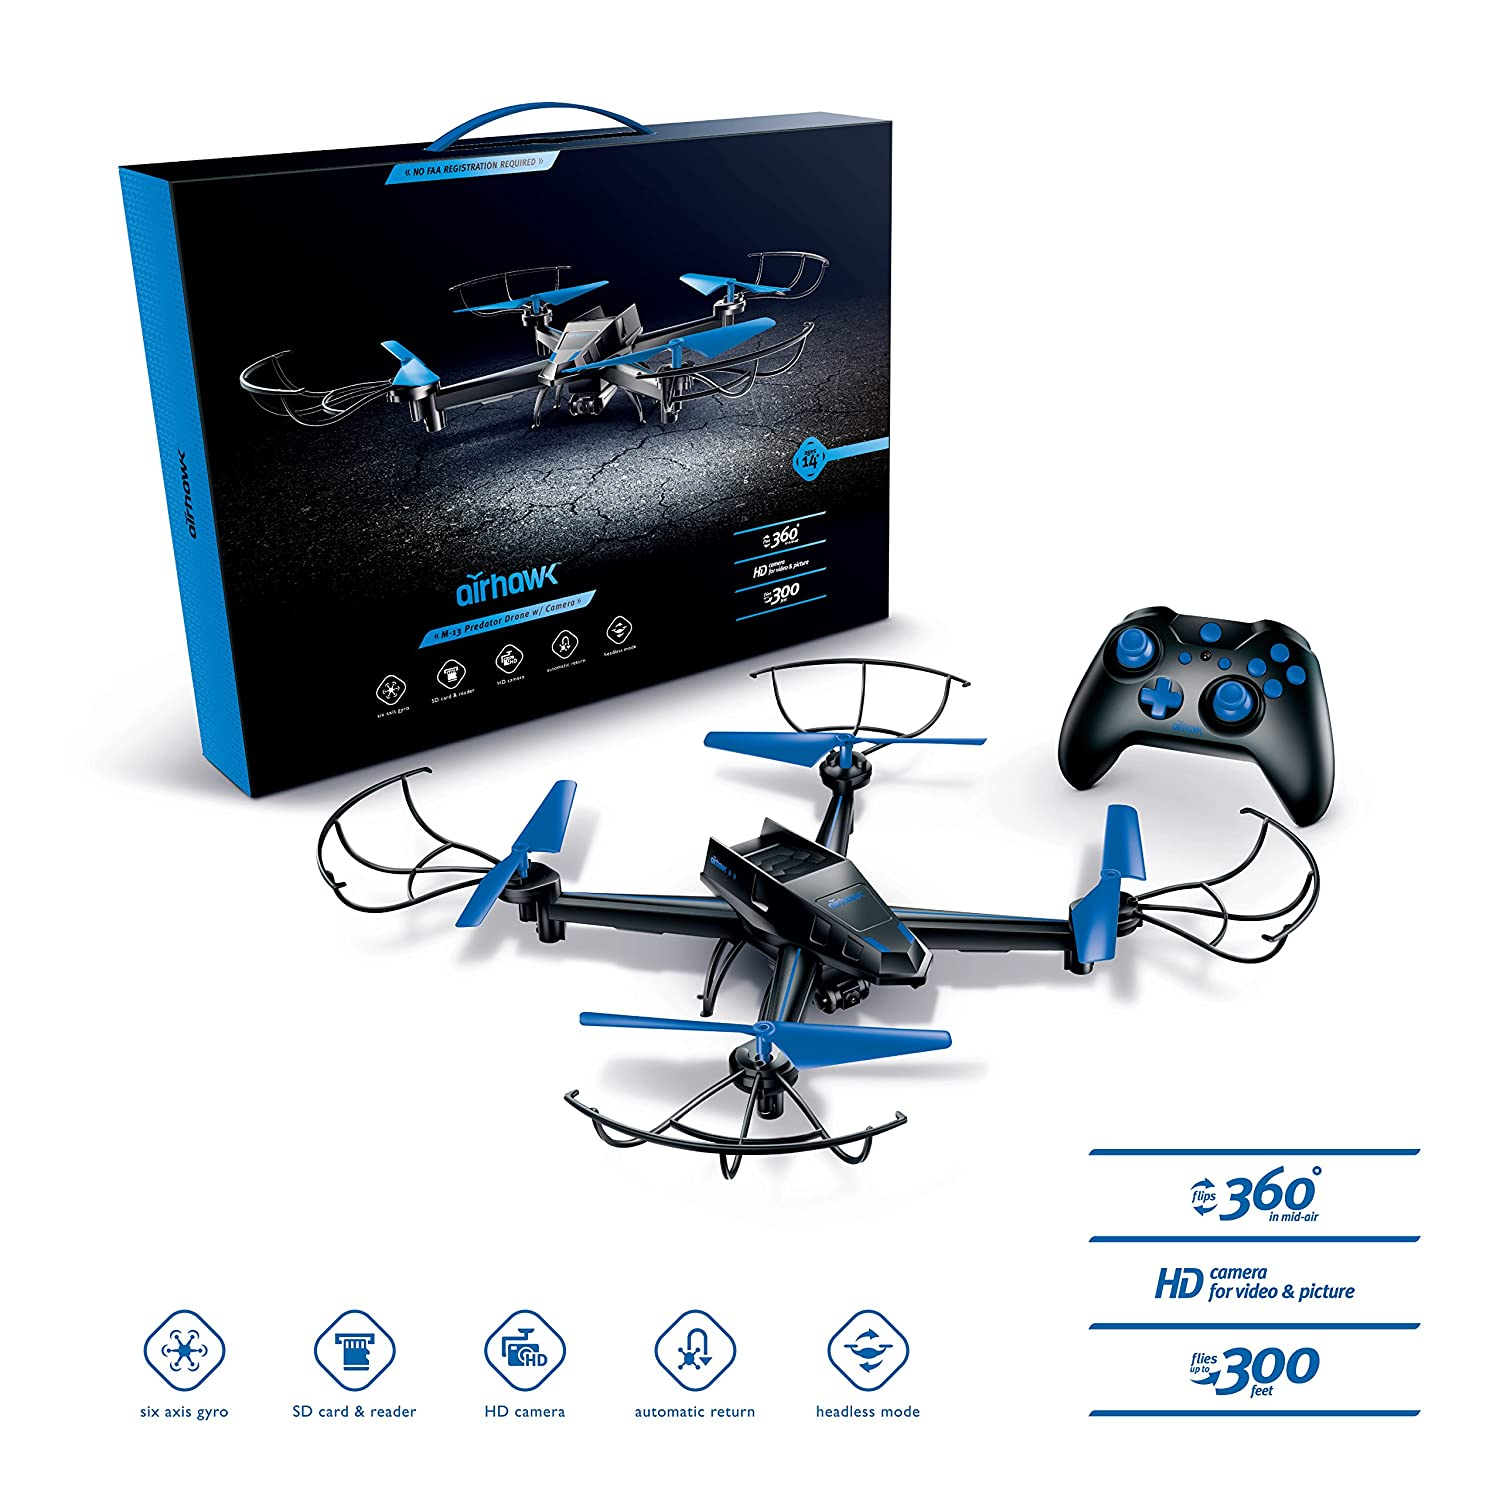 Airhawk M 13 Drone With Superhd Camera 360 Degree 360degree Diagram Showing The Location Of Altair Flips Bright Led Lights Headless Mode Long Lasting Battery Includes Spare Set